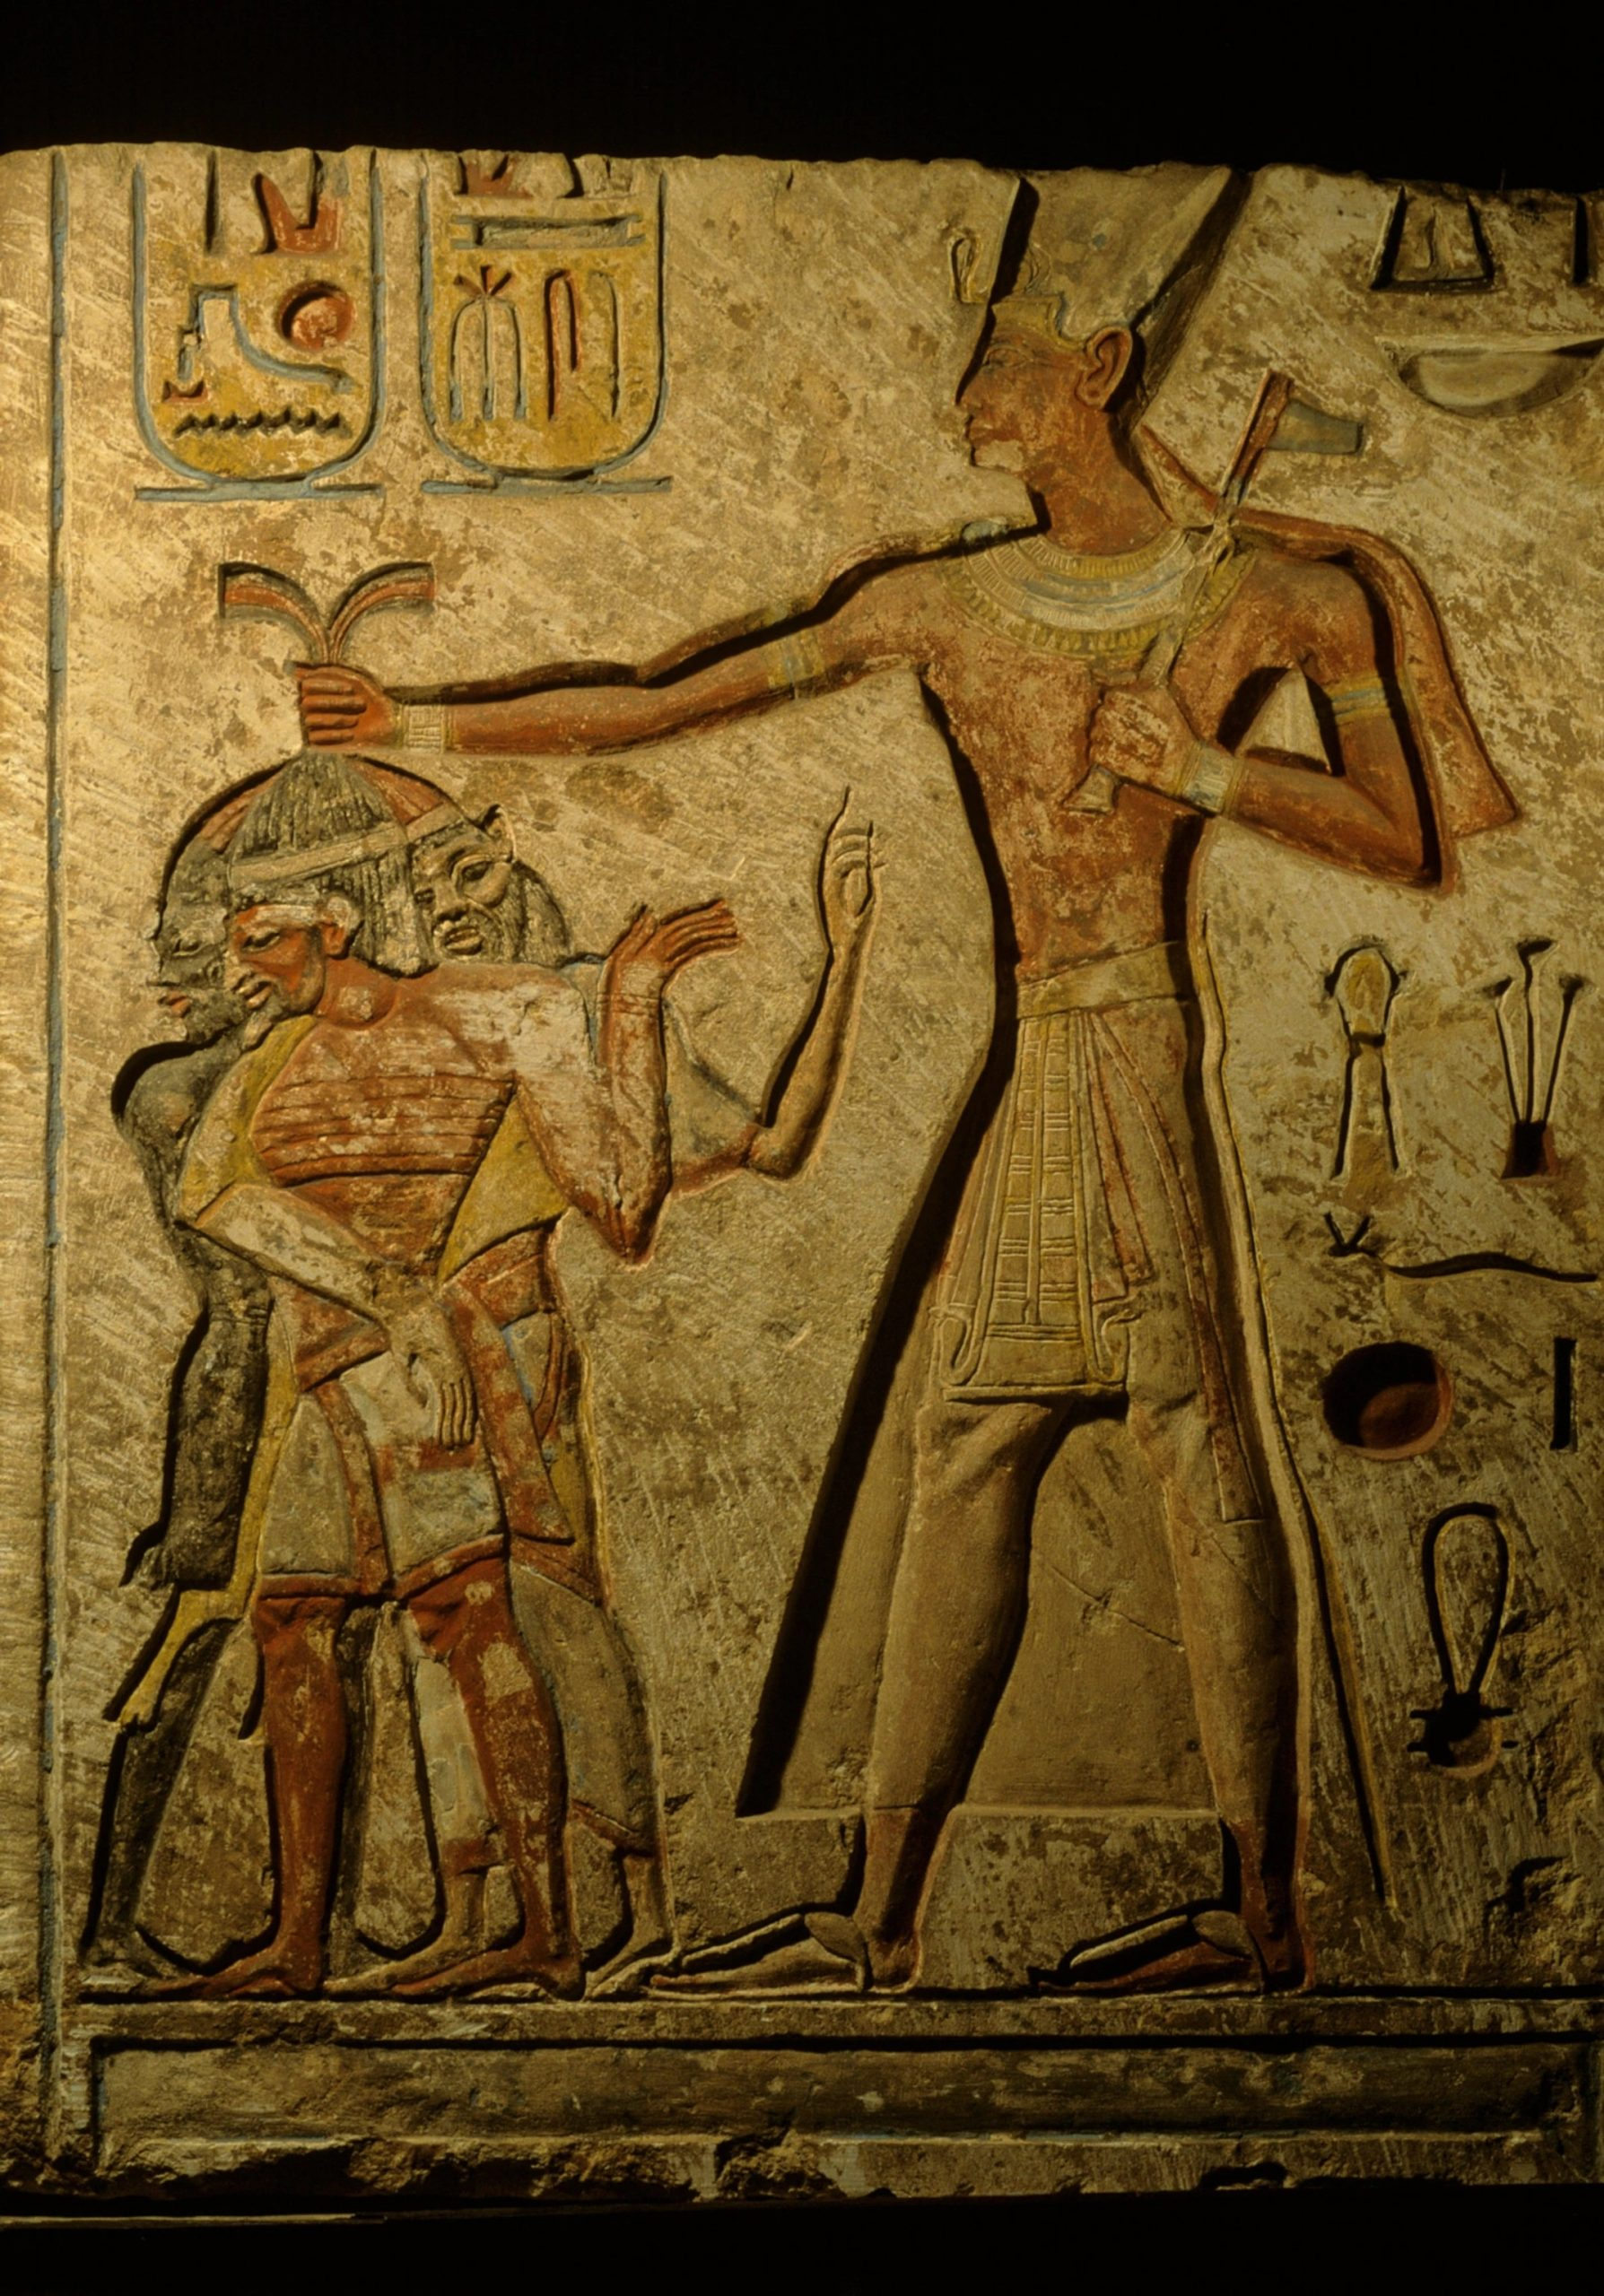 1617391560 134 1827341 resizedklg10178p237a scaled A parade of mummies begins tomorrow .. Learn about the kings and queens participating in it